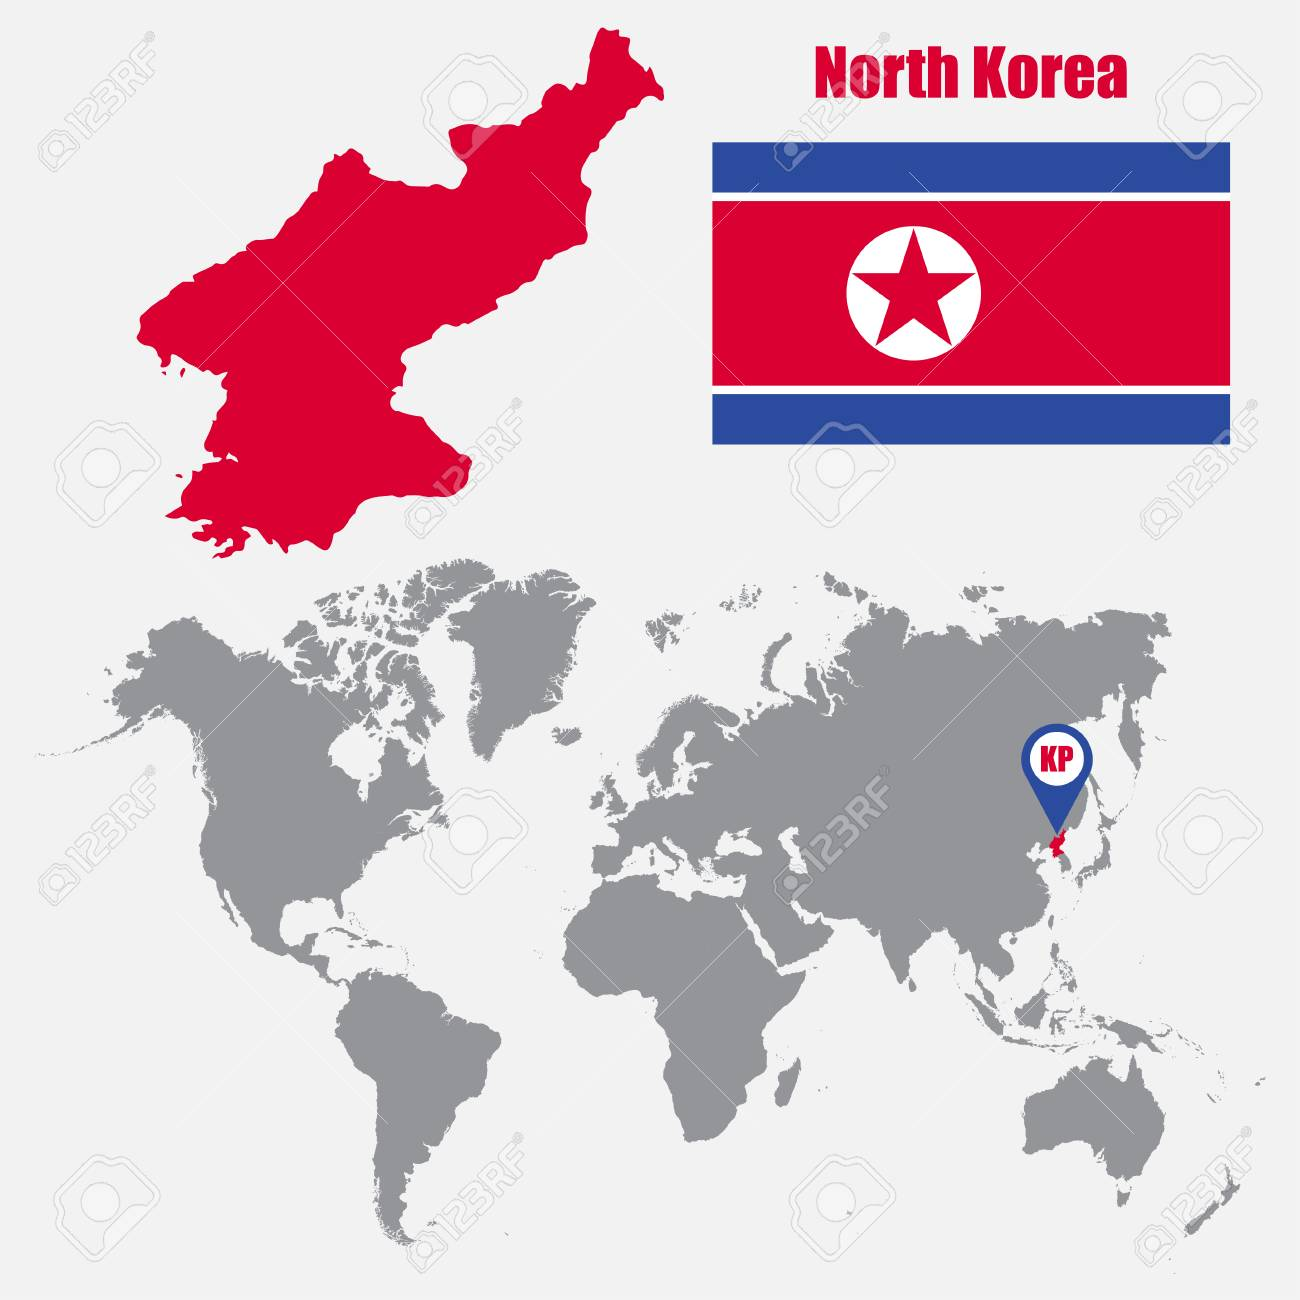 North Korea In The World Map.North Korea Map On A World Map With Flag And Map Pointer Vector